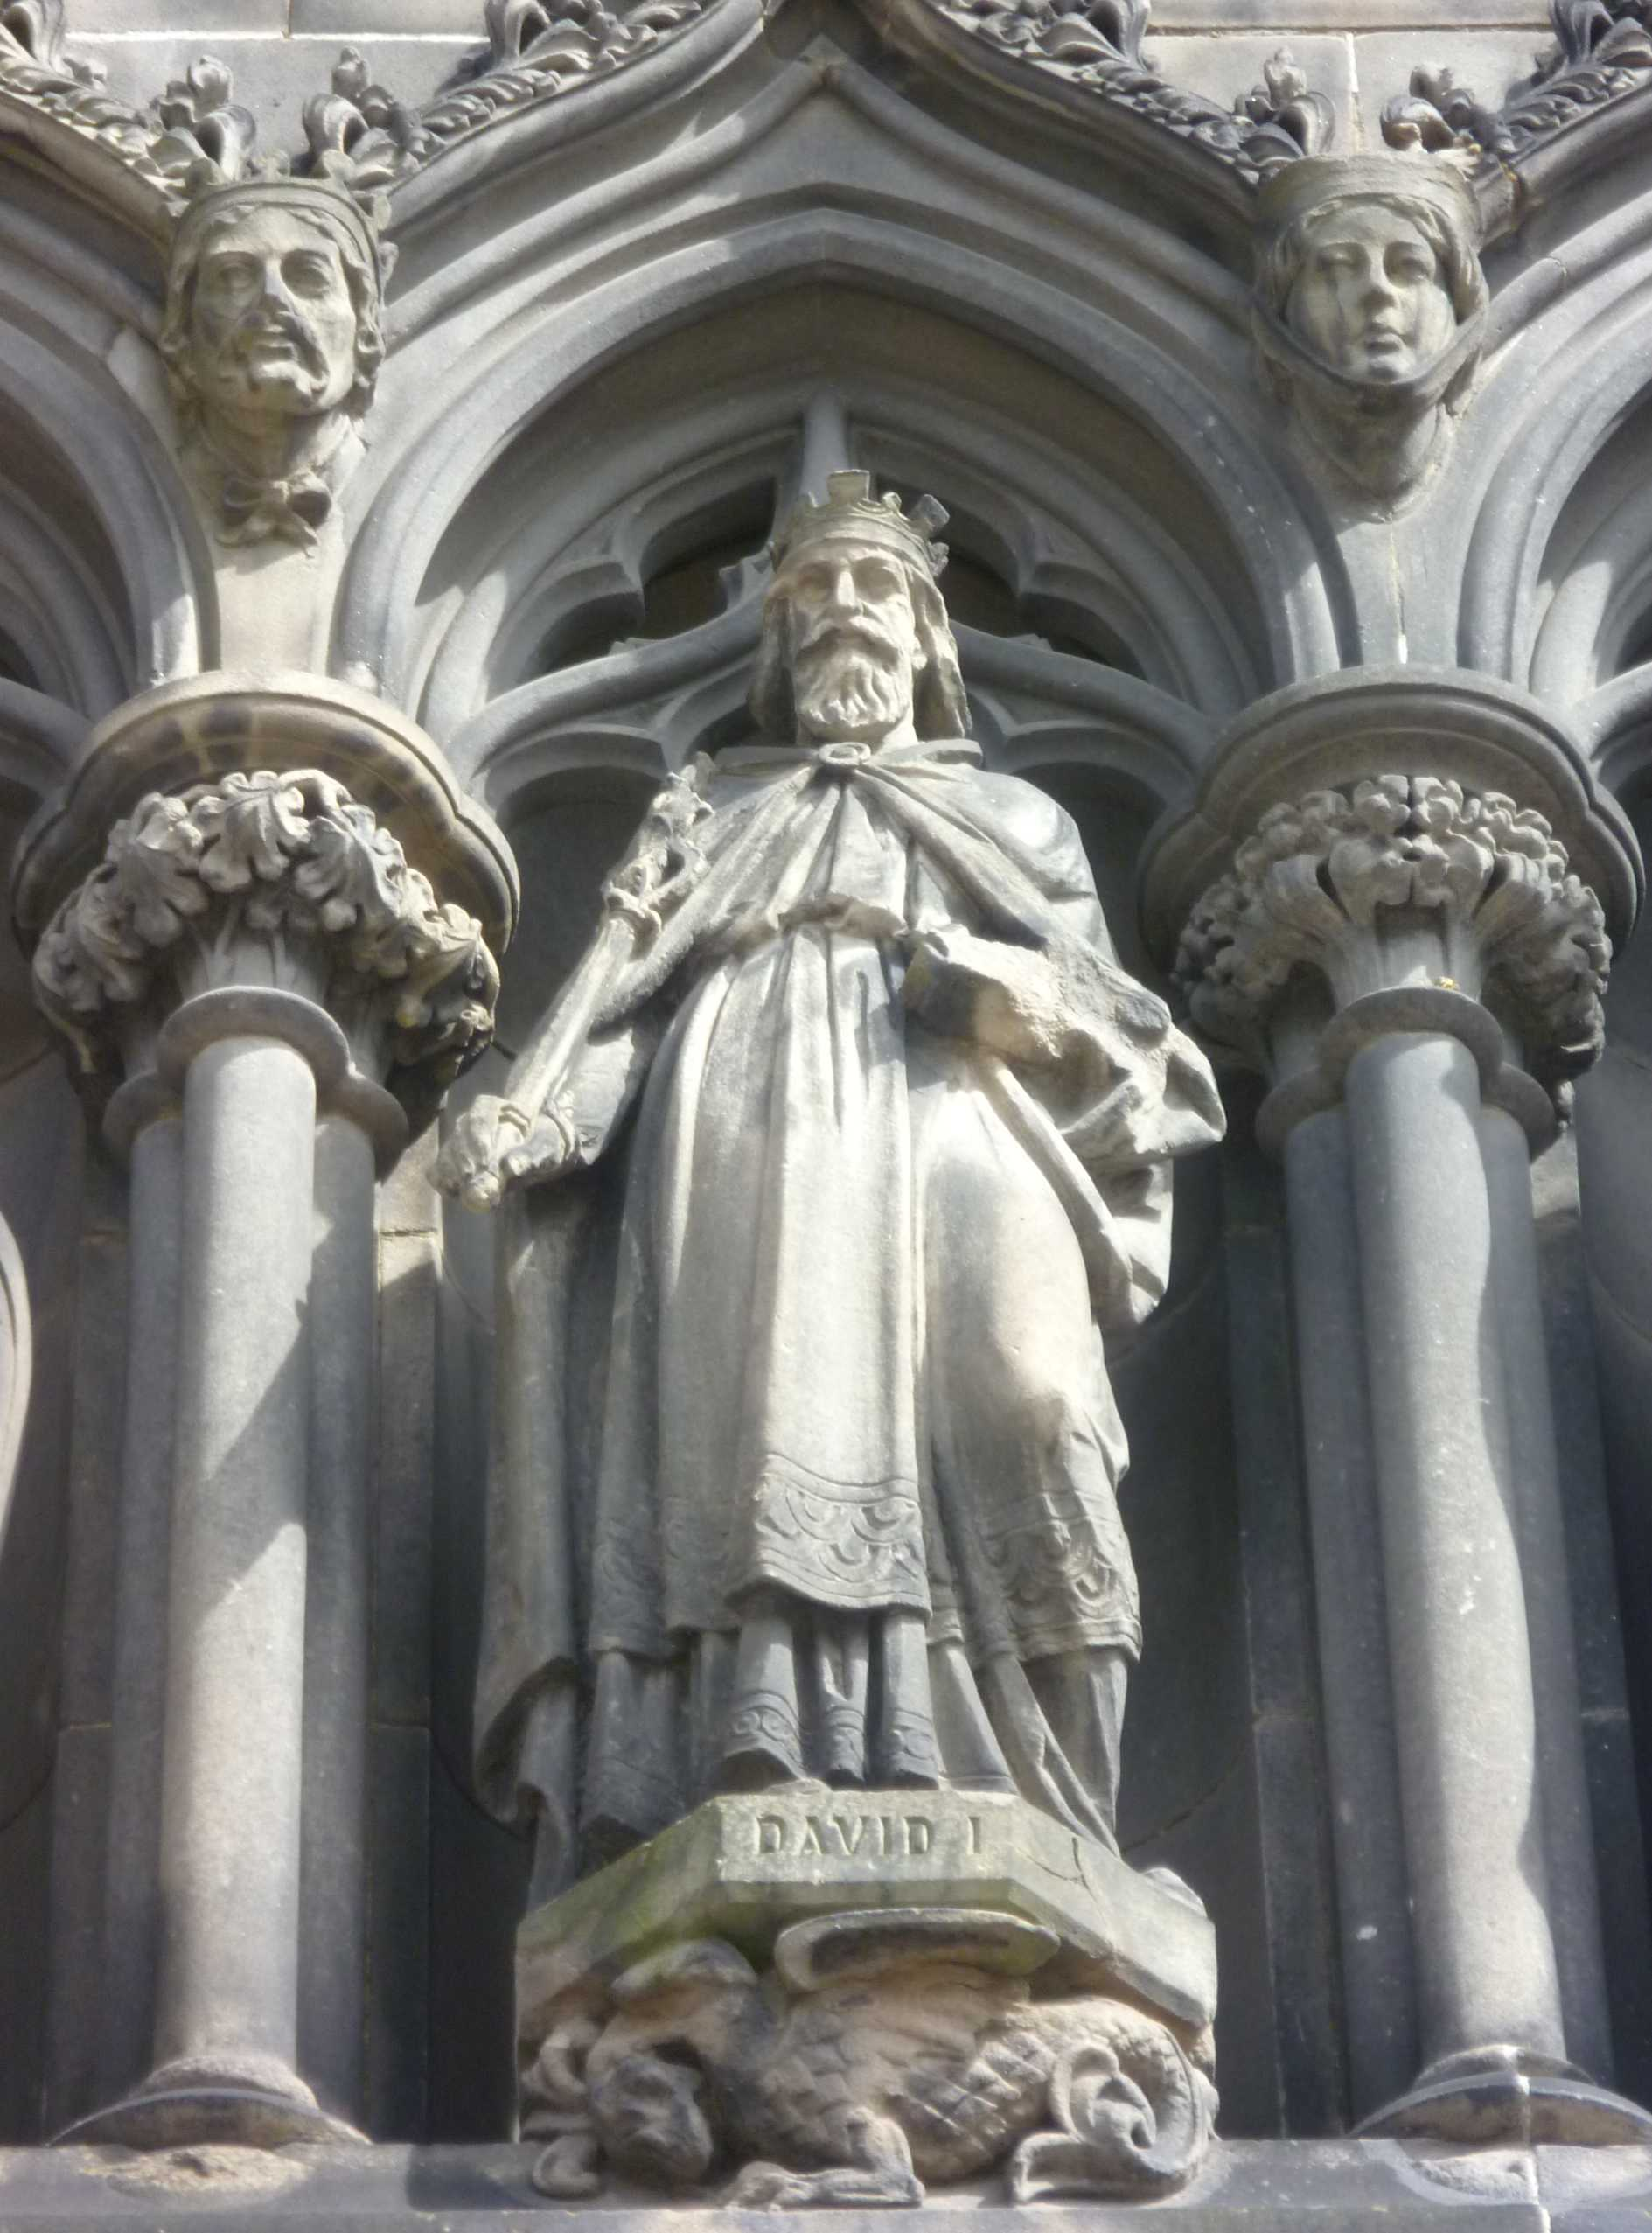 King St. David I of Scotland (d. 1153)